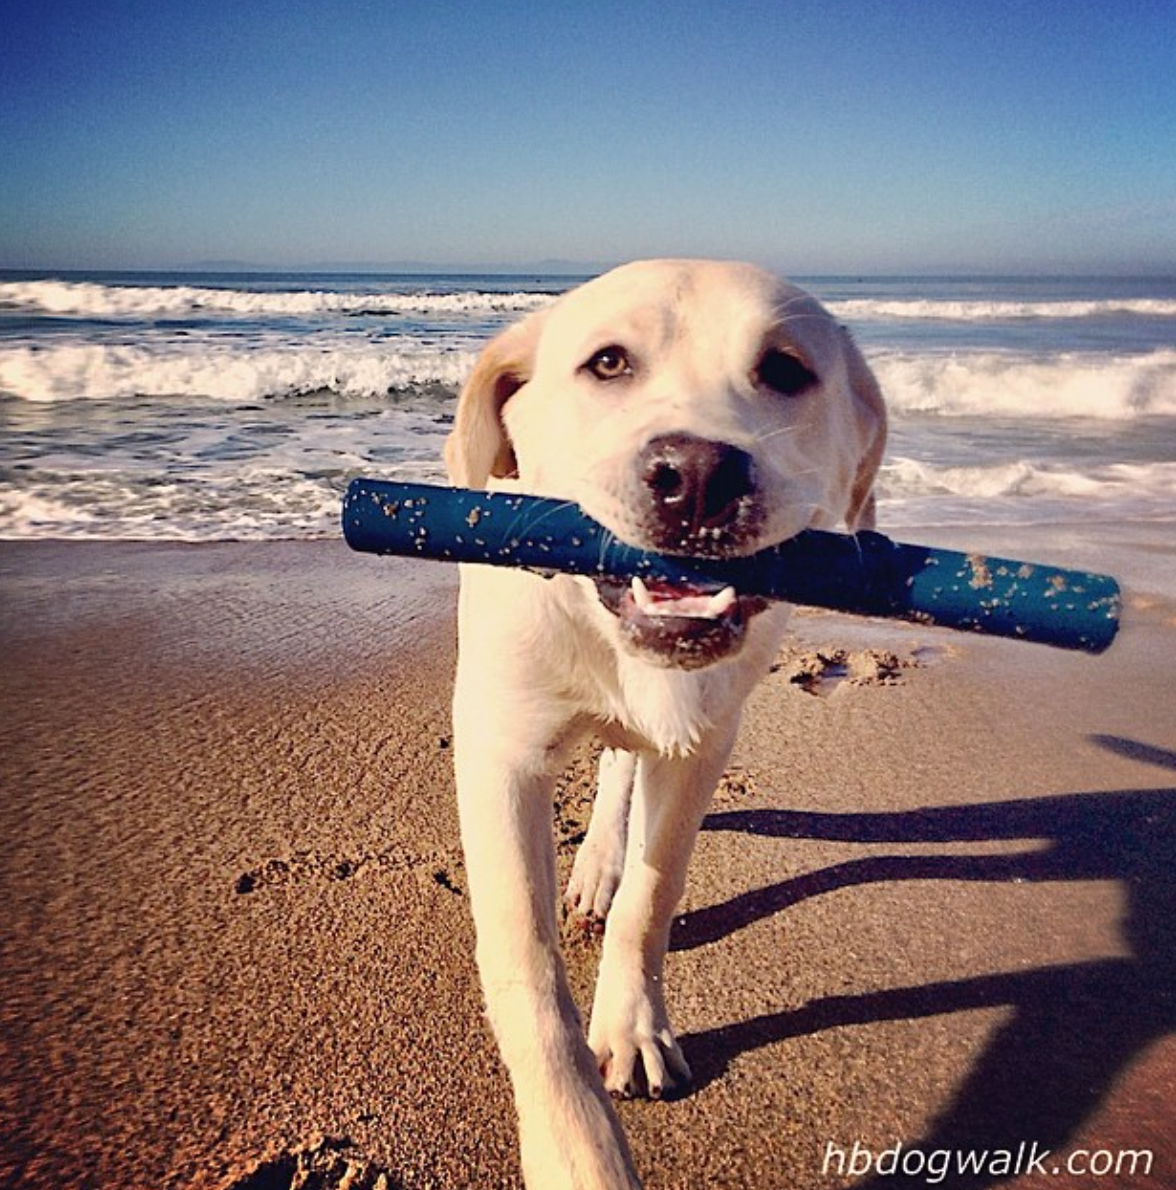 It's like summer camp for your dog!